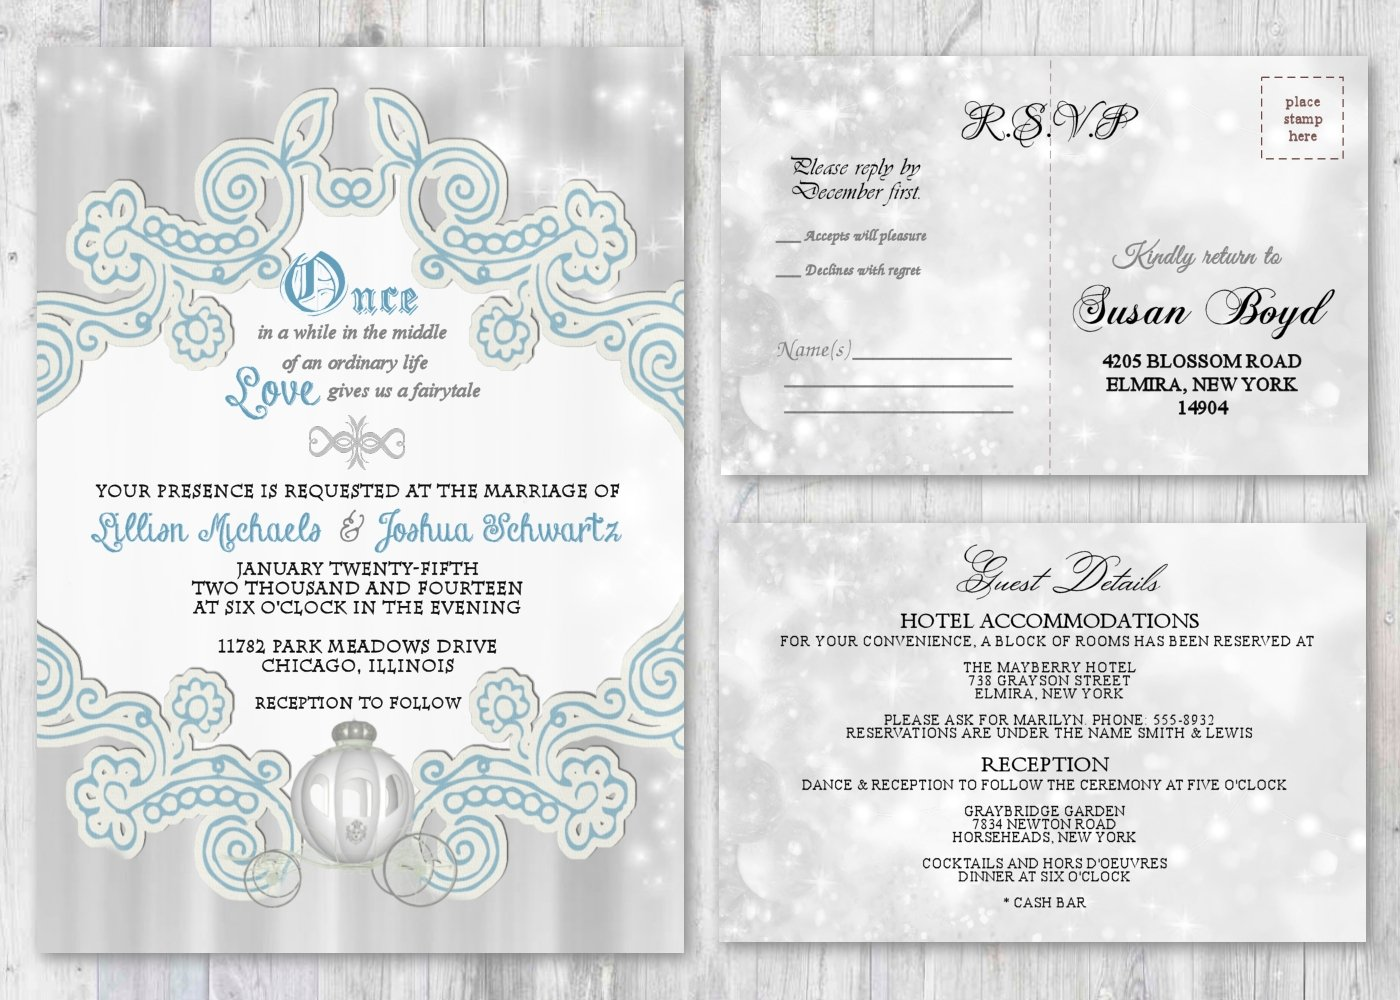 Amazon.com: Fairytale Wedding Invitations and Matching Cards ...